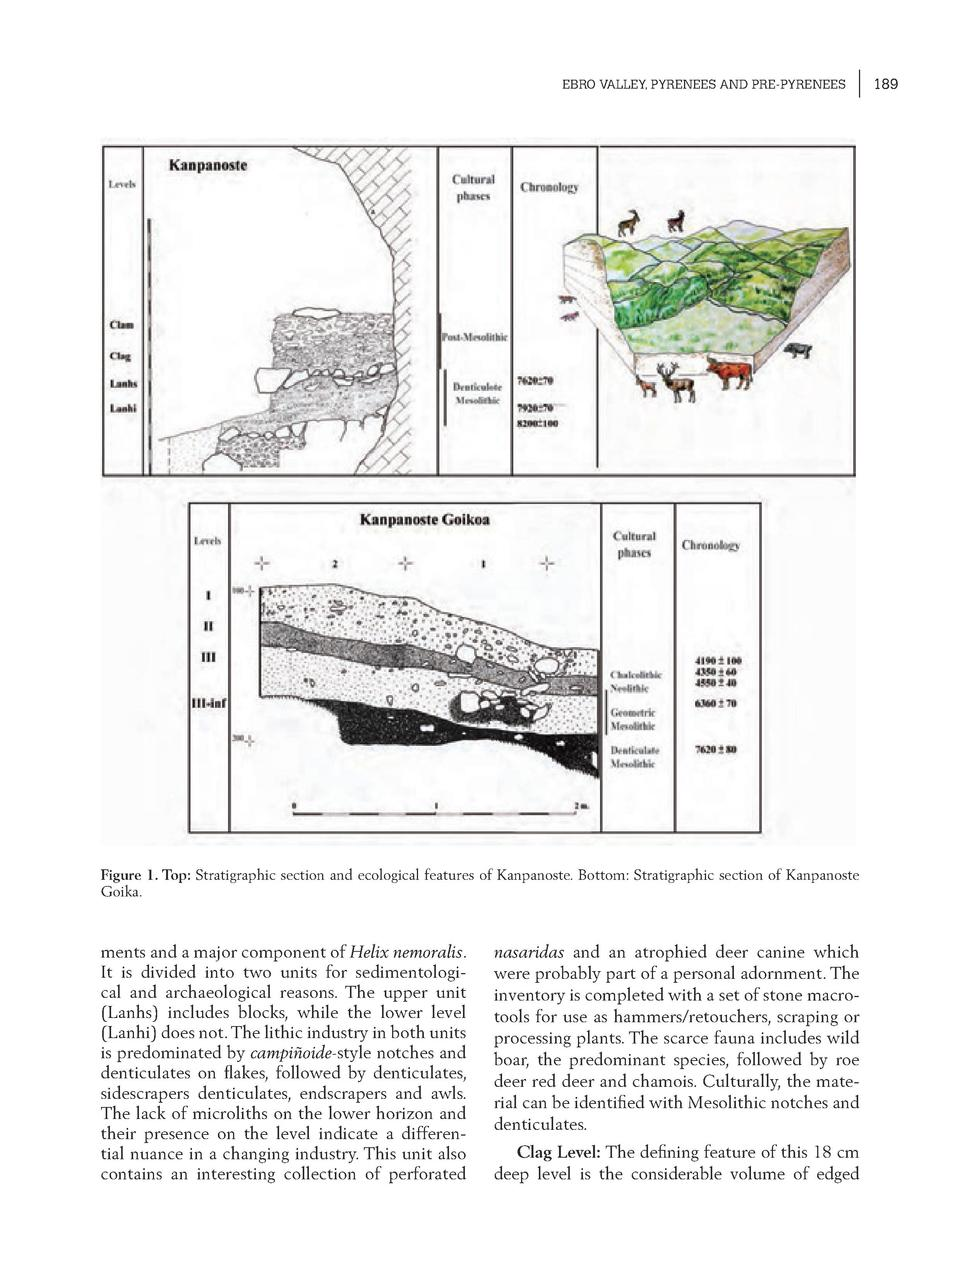 EBRO VALLEY, PYRENEES AND PRE-PYRENEES  Figure 1. Top  Stratigraphic section and ecological features of Kanpanoste. Bottom...